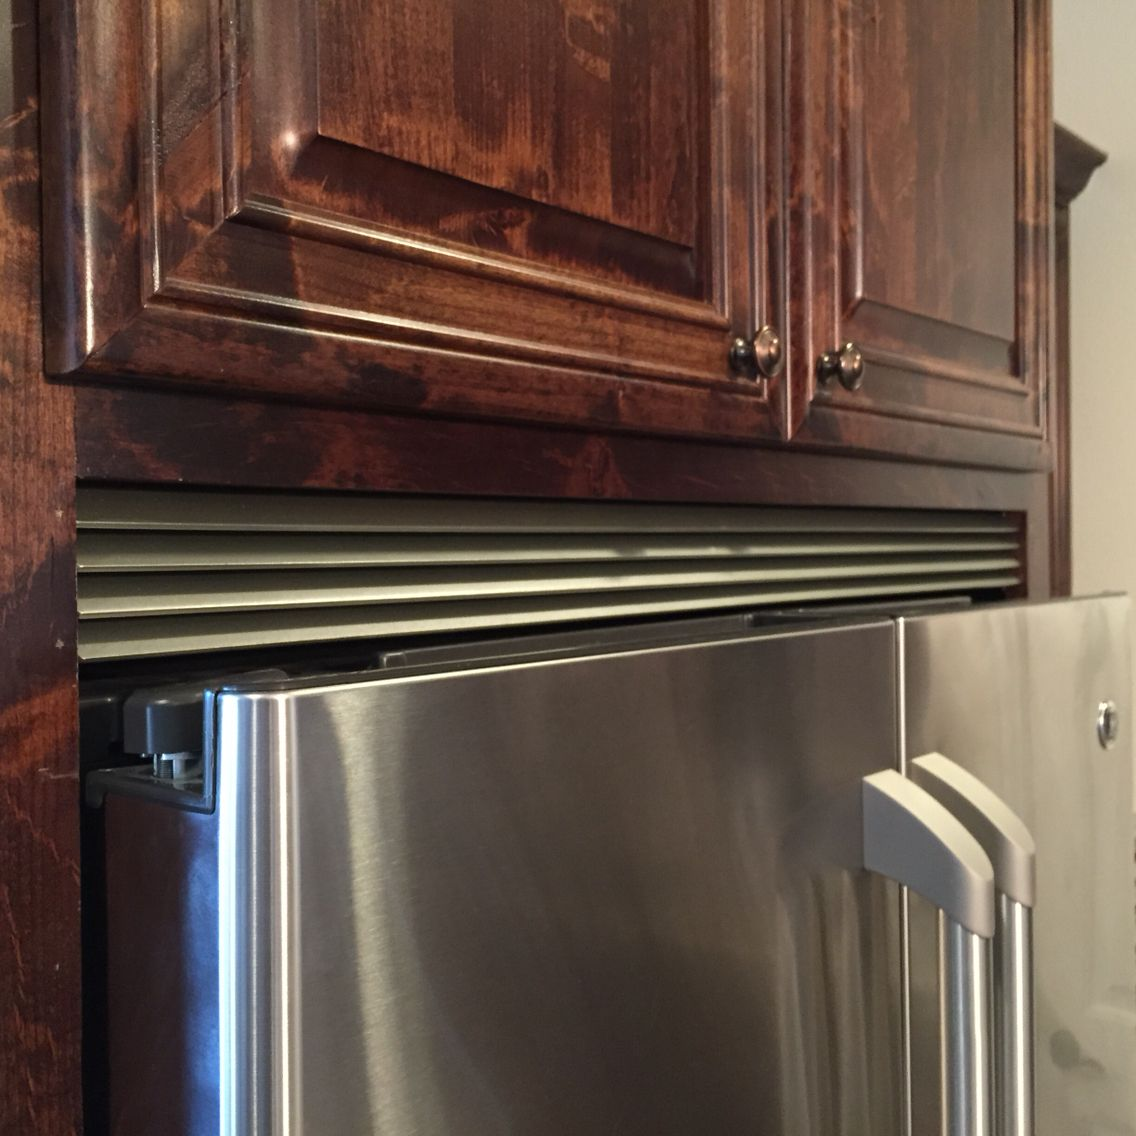 Metal Louvered Gap Filler Above Fridge Kitchen Design Kitchen